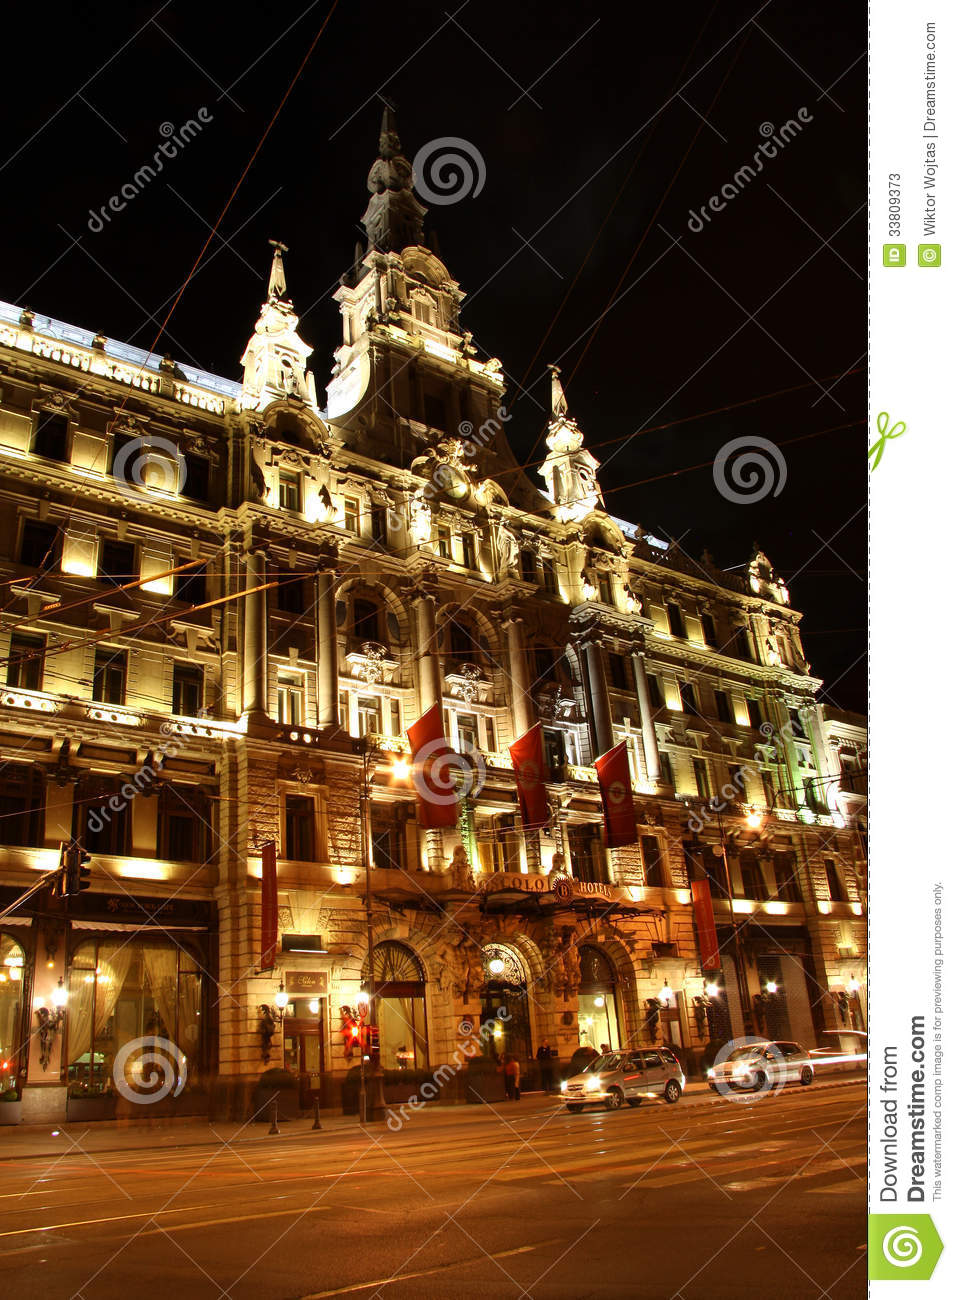 Luxury boscolo hotel in budapest at night hungary for Luxury extended stay hotels nyc